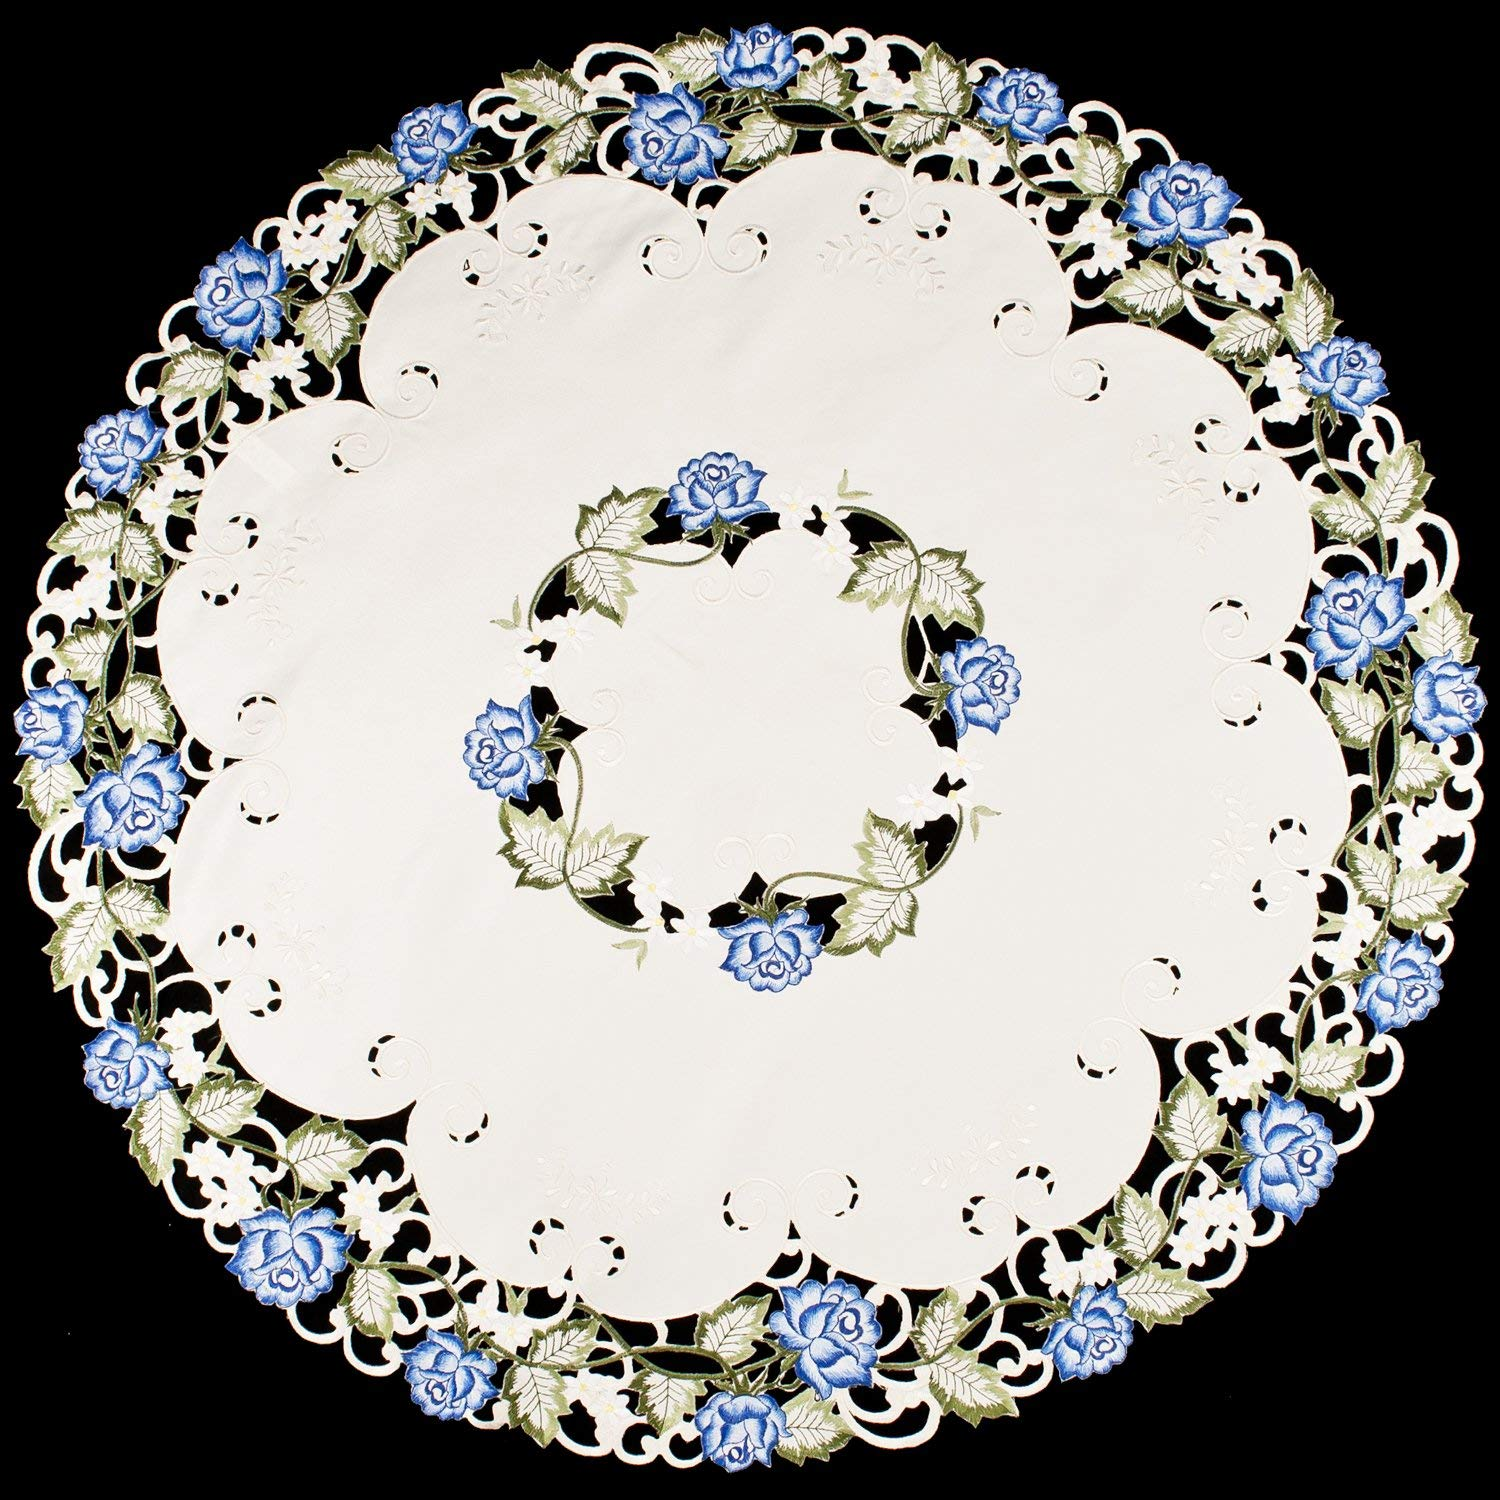 "Linens, Art and Things Embroidered Blue Rose Ivory Table Topper Tablecloth 36"" Round Doily Table Topper"